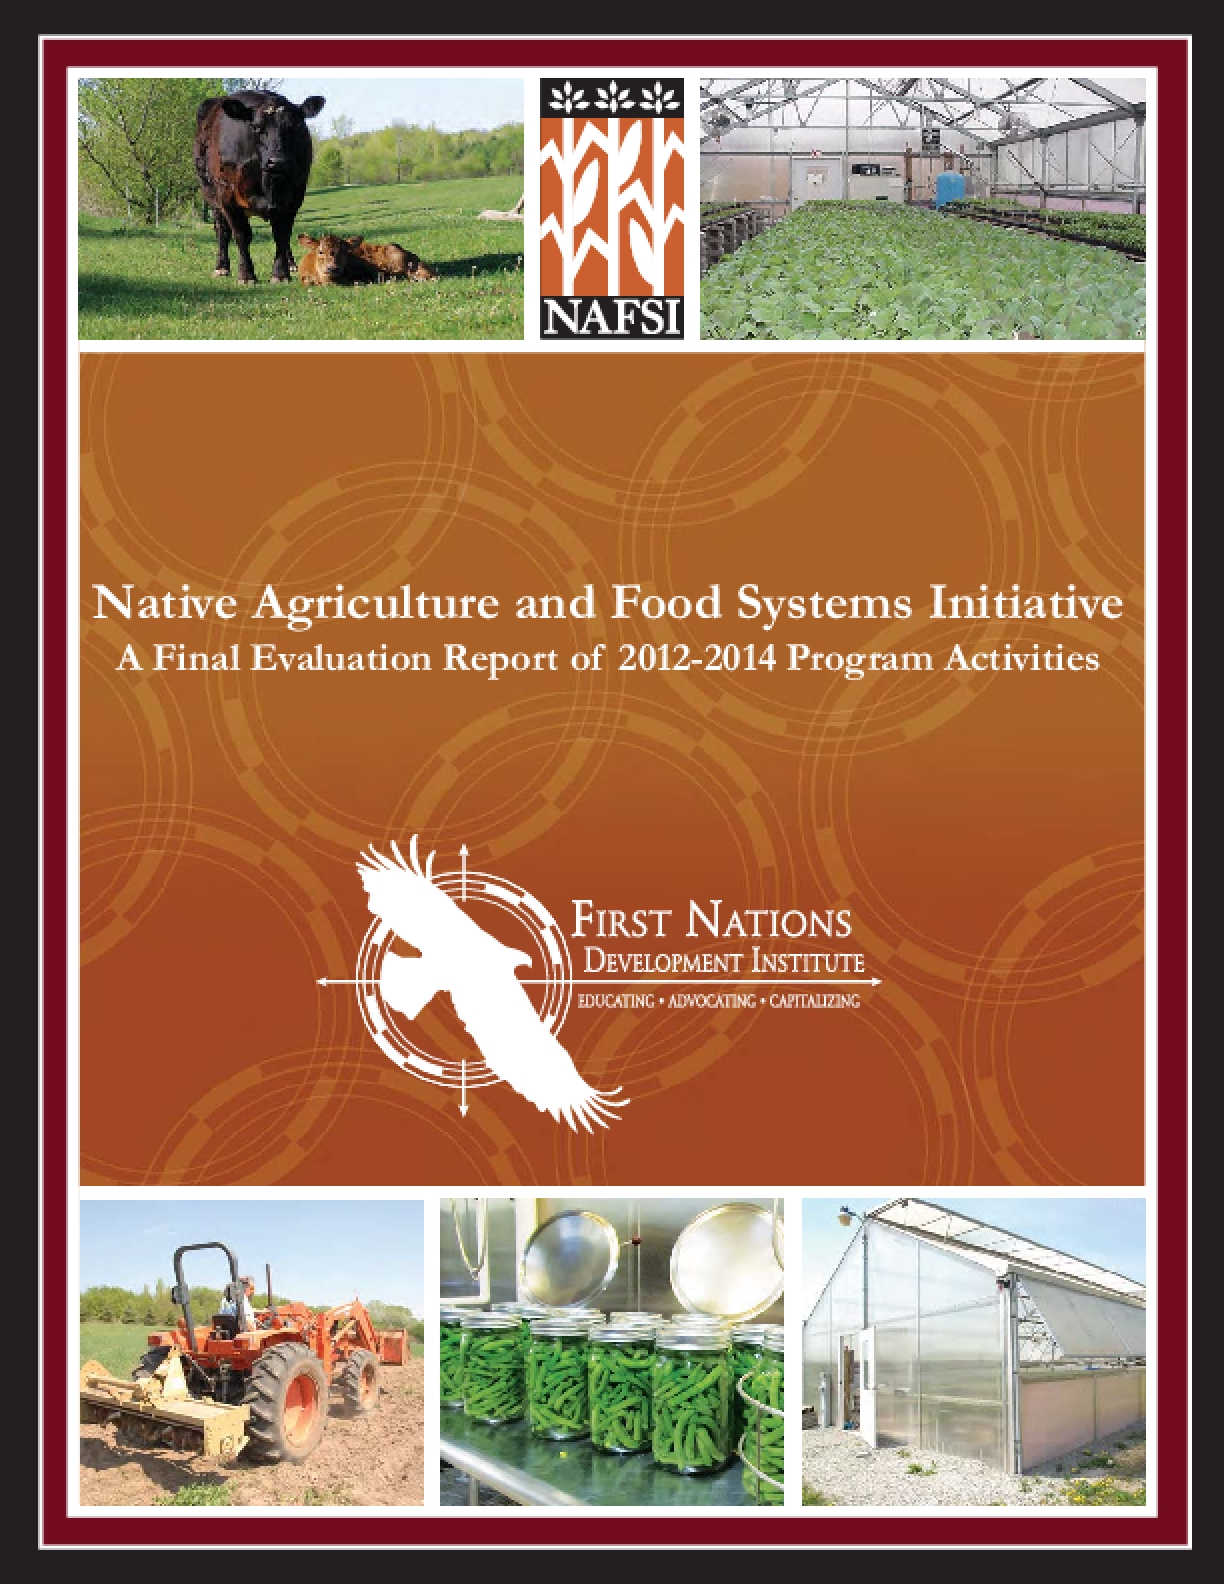 Native Agriculture and Food Systems Initiative: A Final Evaluation Report of 2012-2014 Program Activities